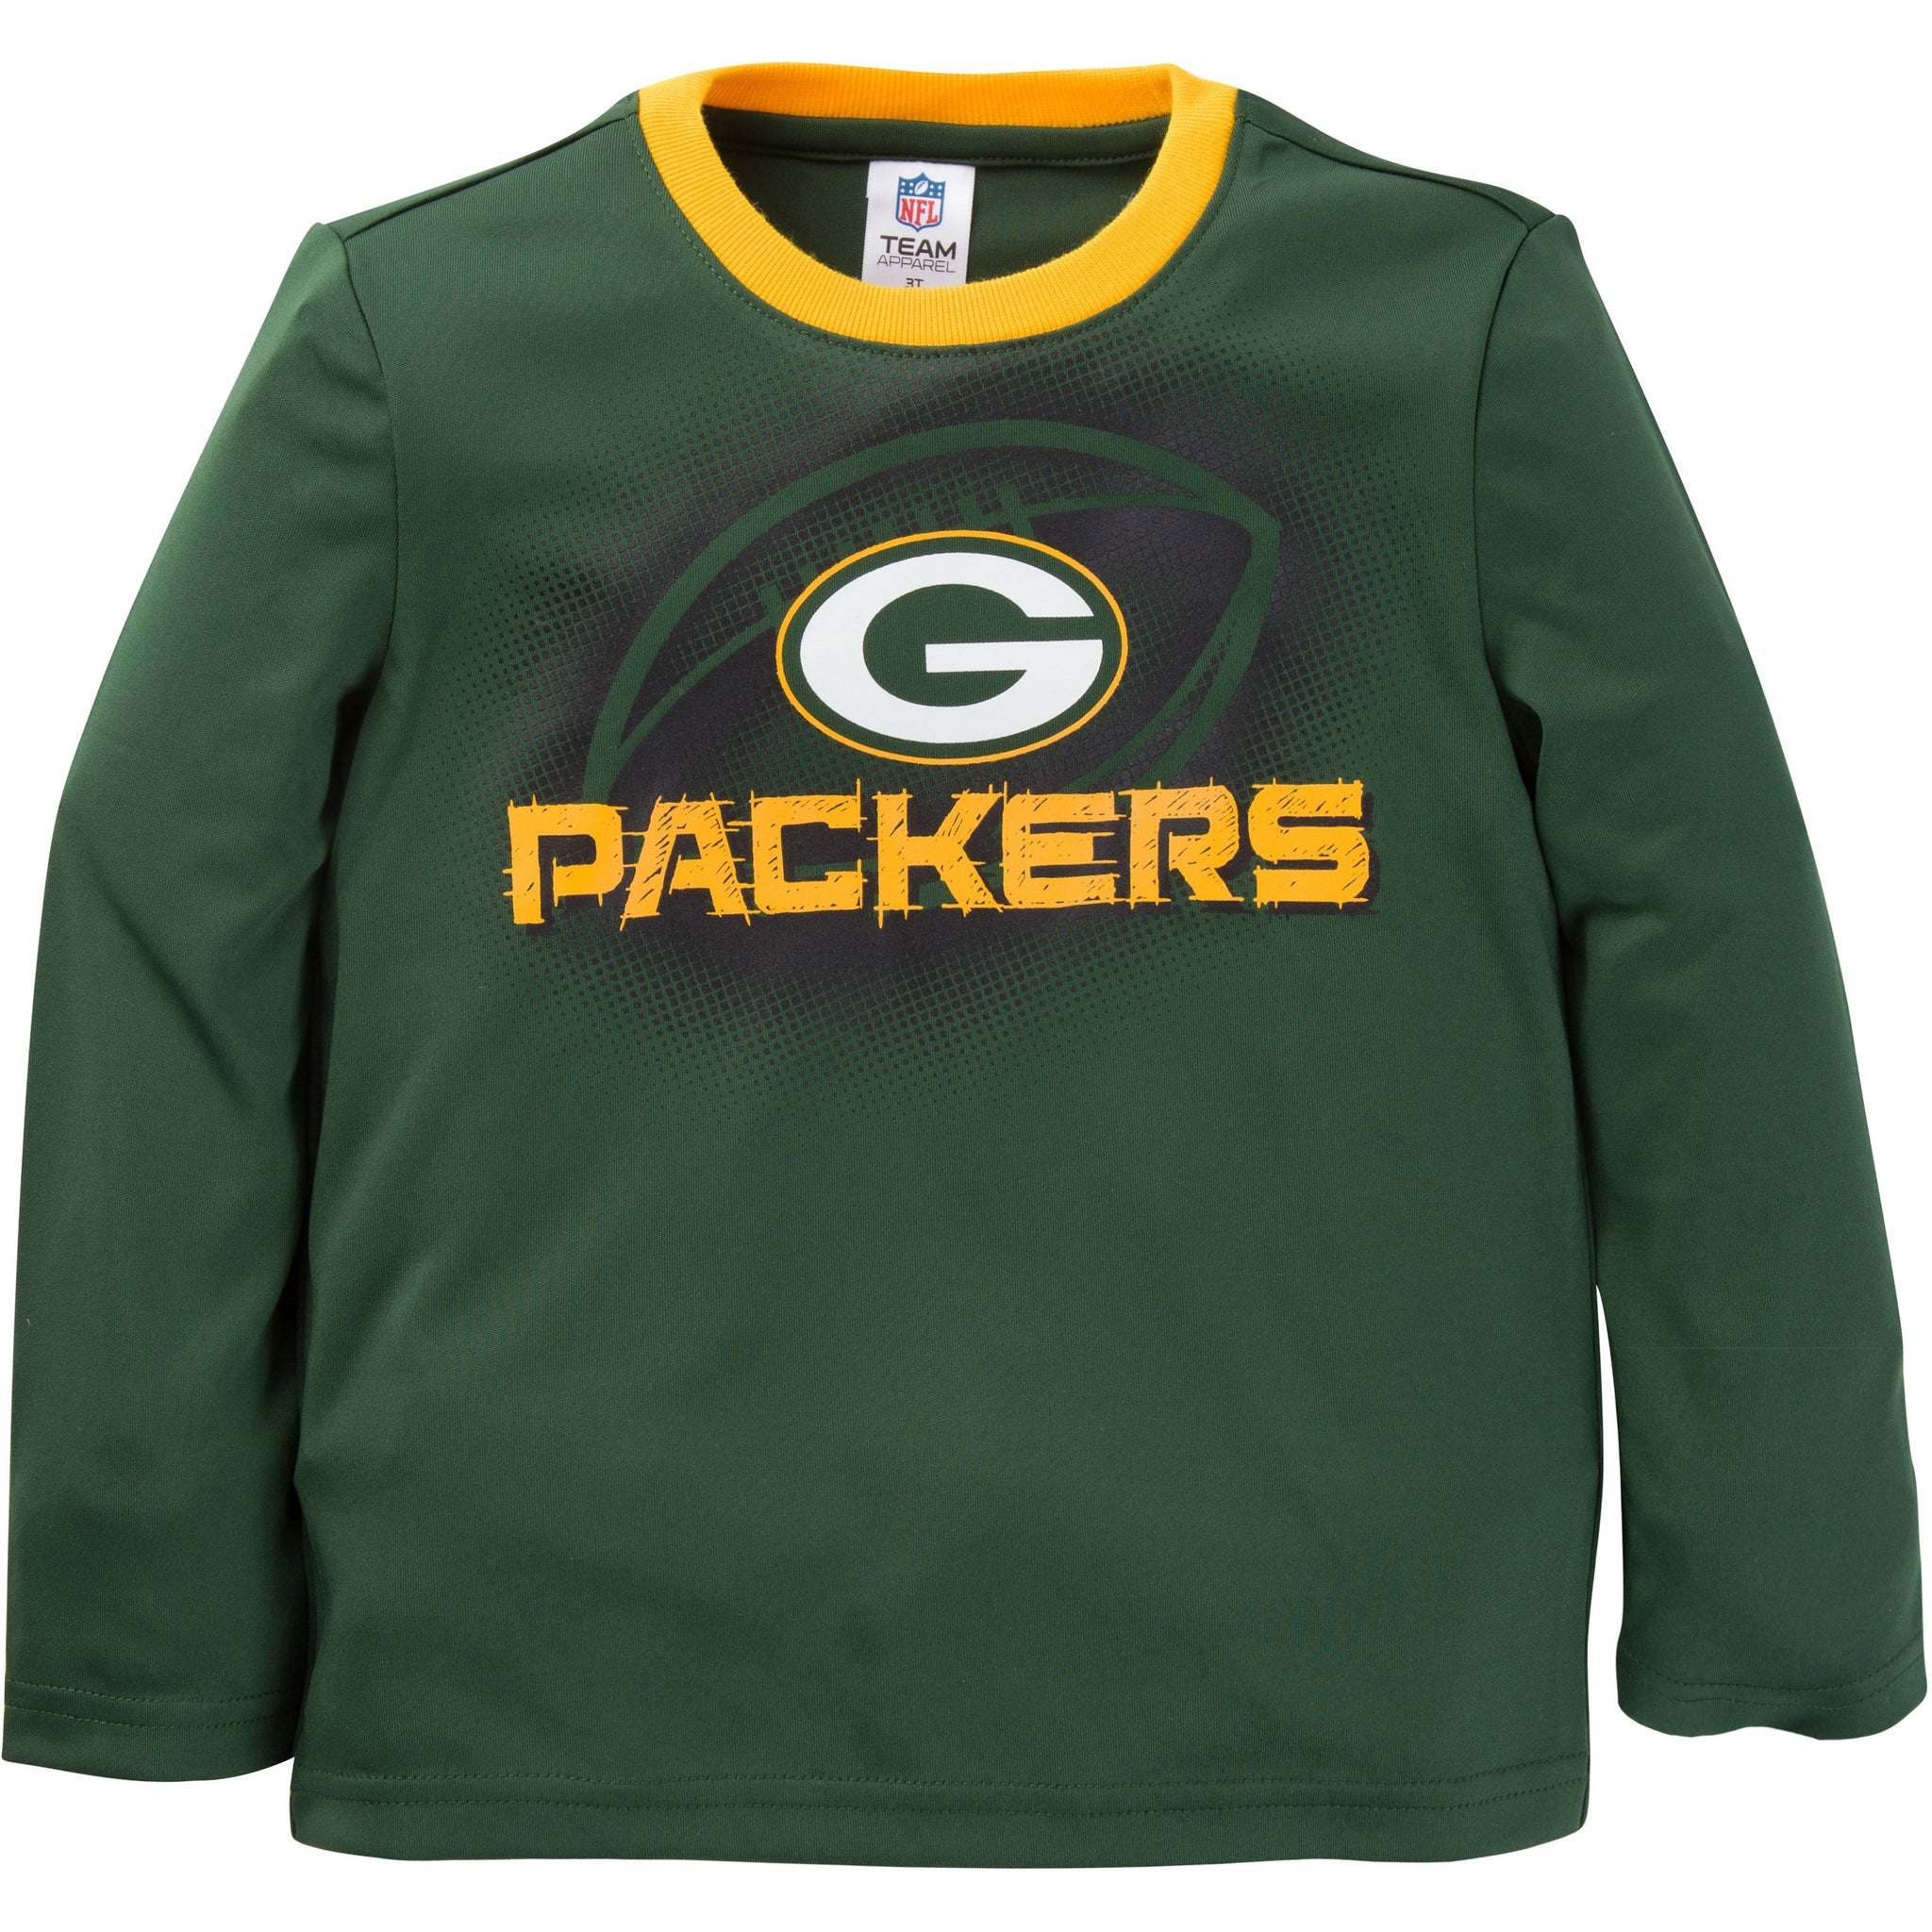 NFL Green Bay Packers Toddler Boys Long Sleeve Performance Tee Shirt-Gerber Childrenswear